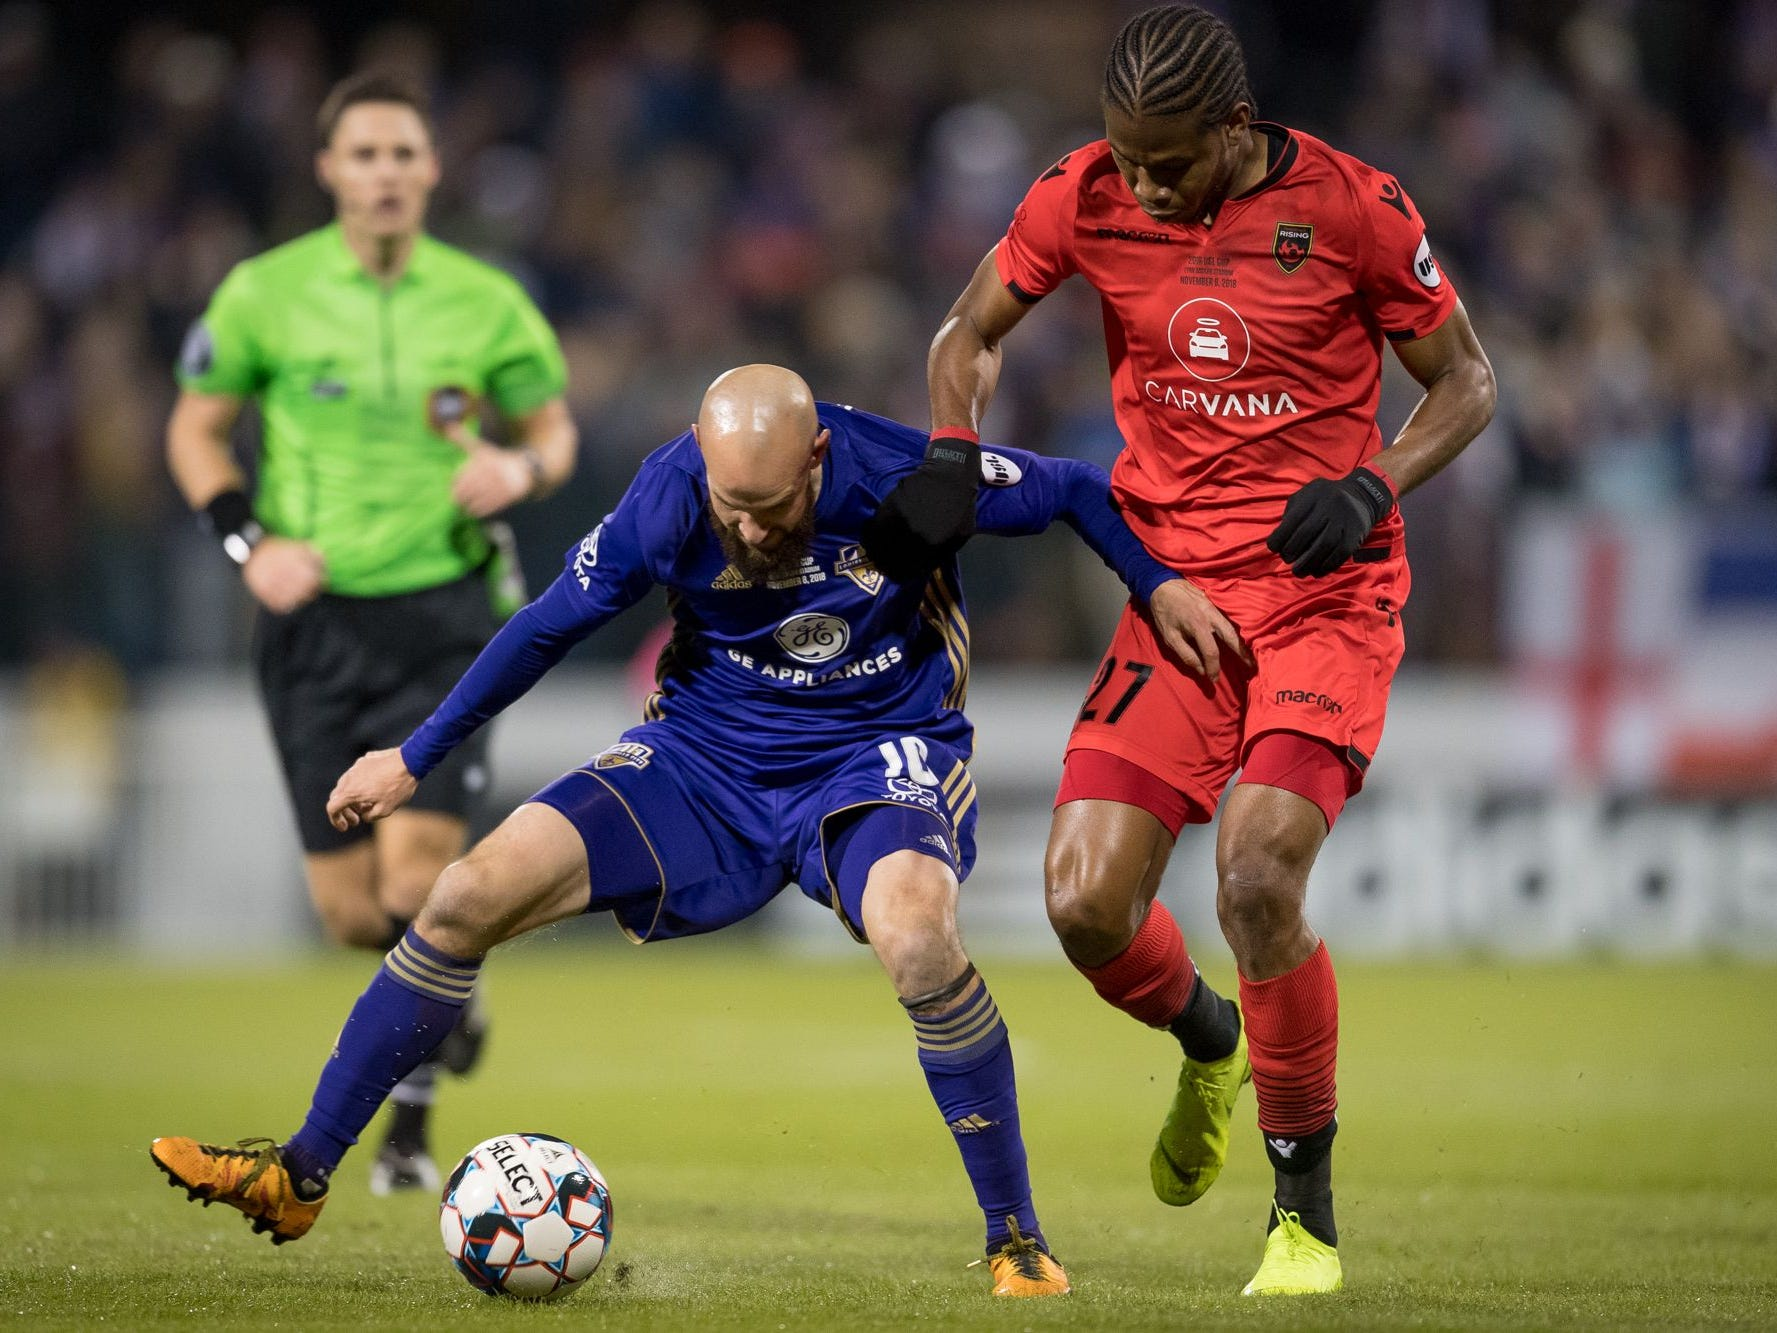 Louisville City FC midfielder Brian Ownby (10) plays against Phoenix Rising FC midfielder Kevon Lambert (27) during the first half of the USL Cup final played at Lynn Stadium on the campus of the University of Louisville, Louisville, Ky., Thursday, Nov., 8, 2018.